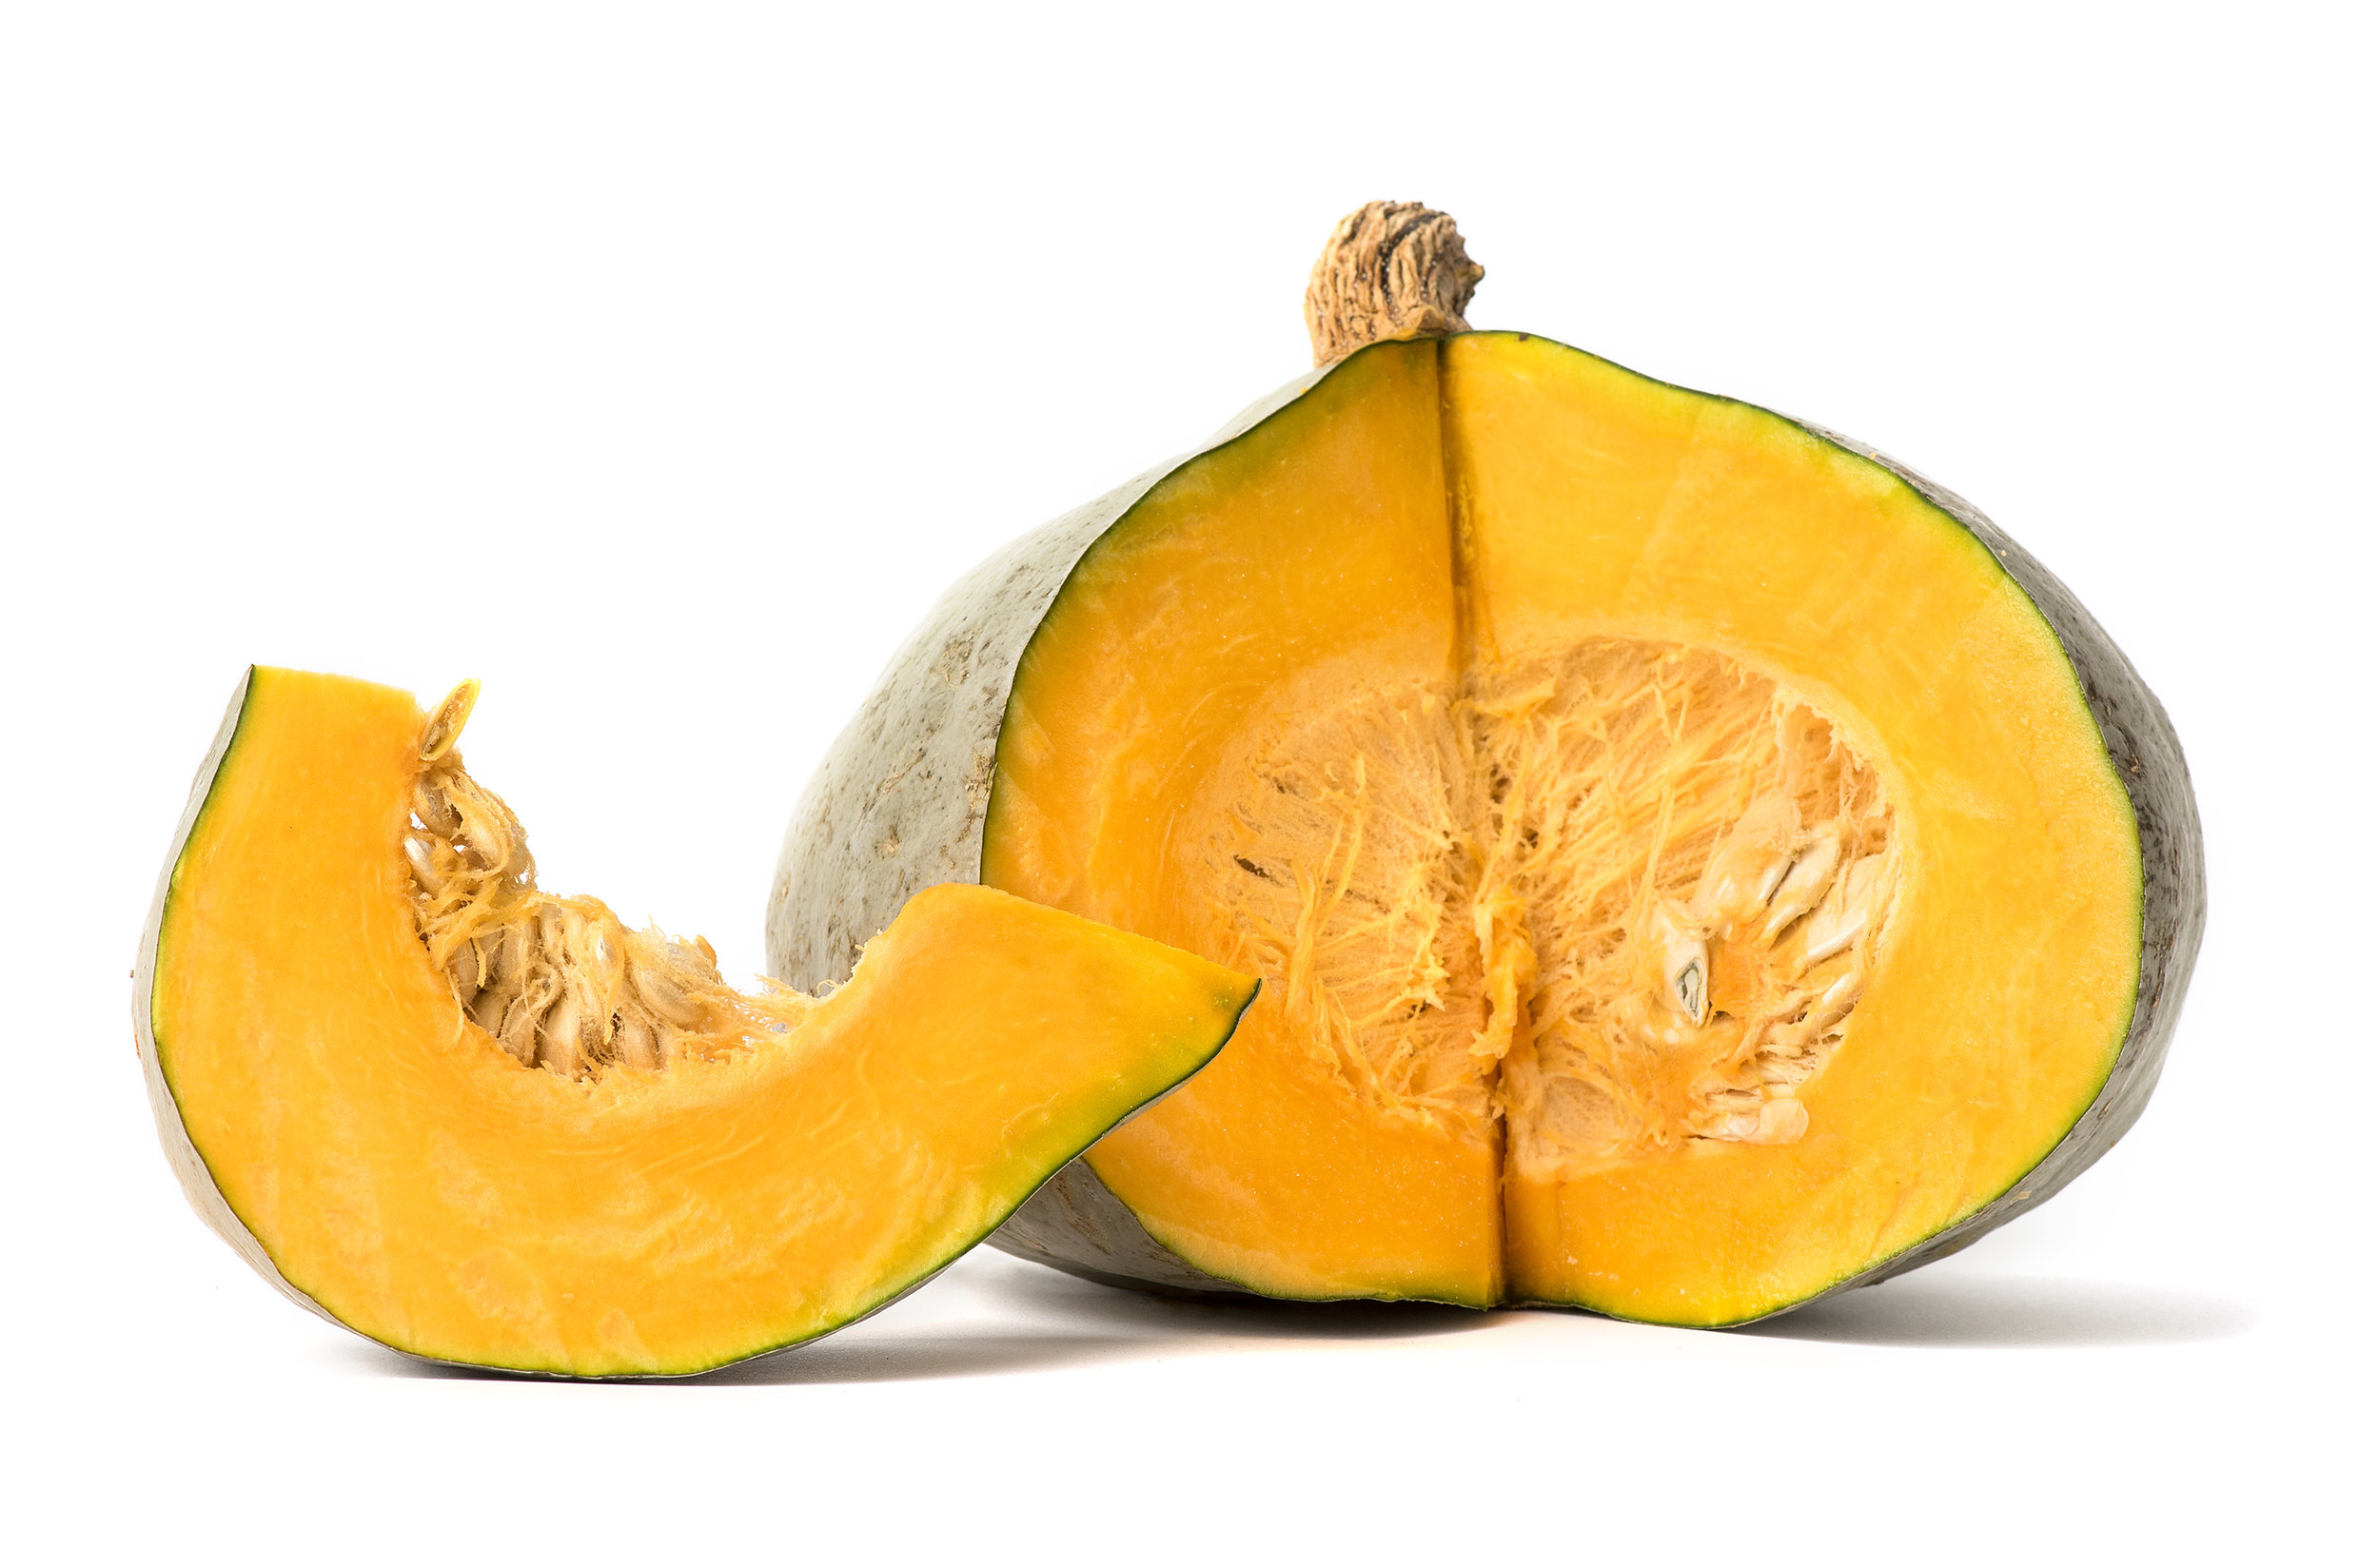 If you can find one, make this recipe with the lovely Silver Bell! Other SIMPLE squash will work also.